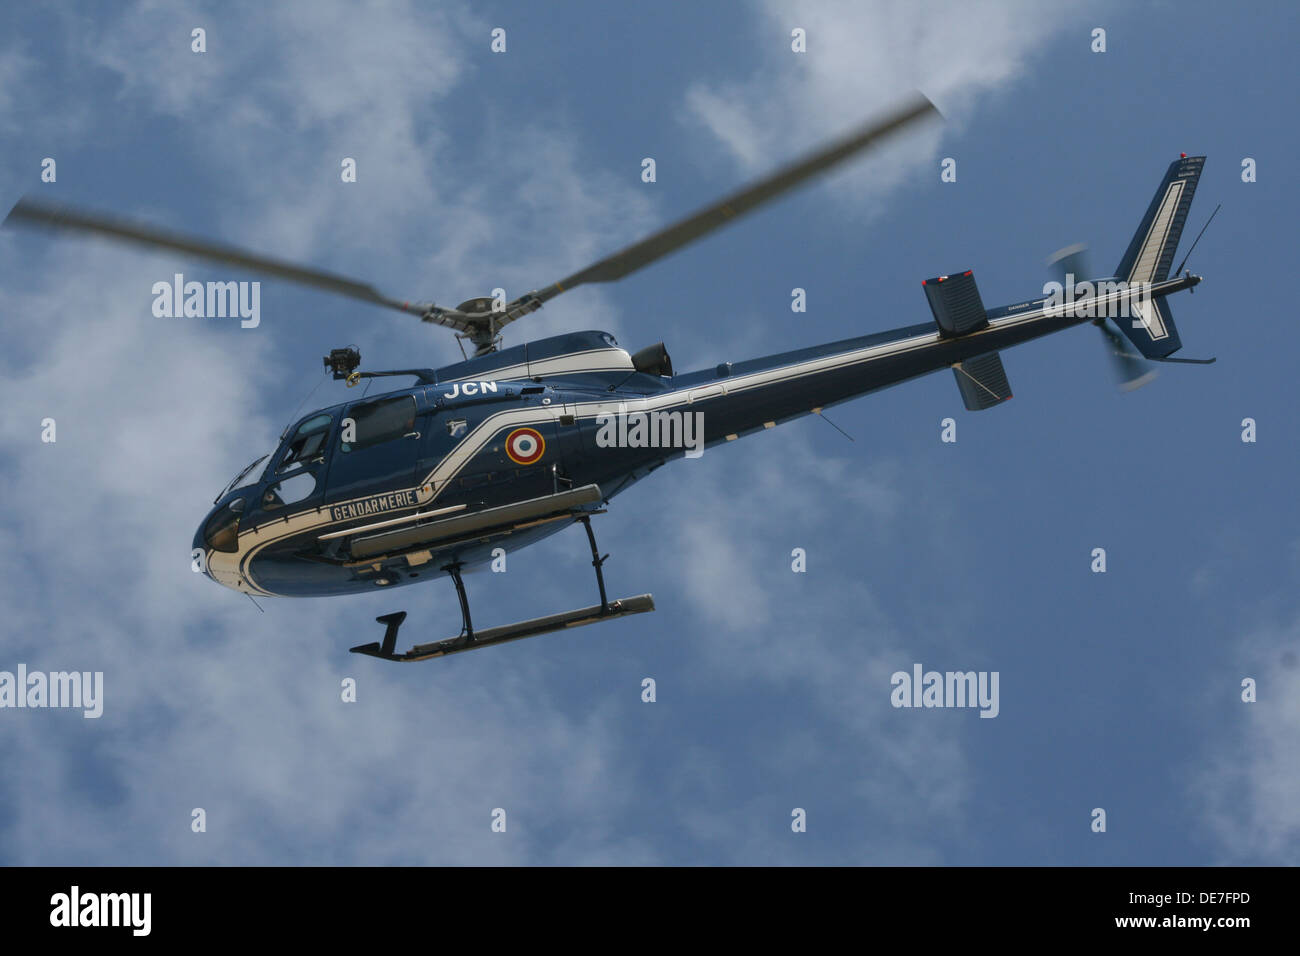 French Gendarmerie helicopter in the sky. - Stock Image